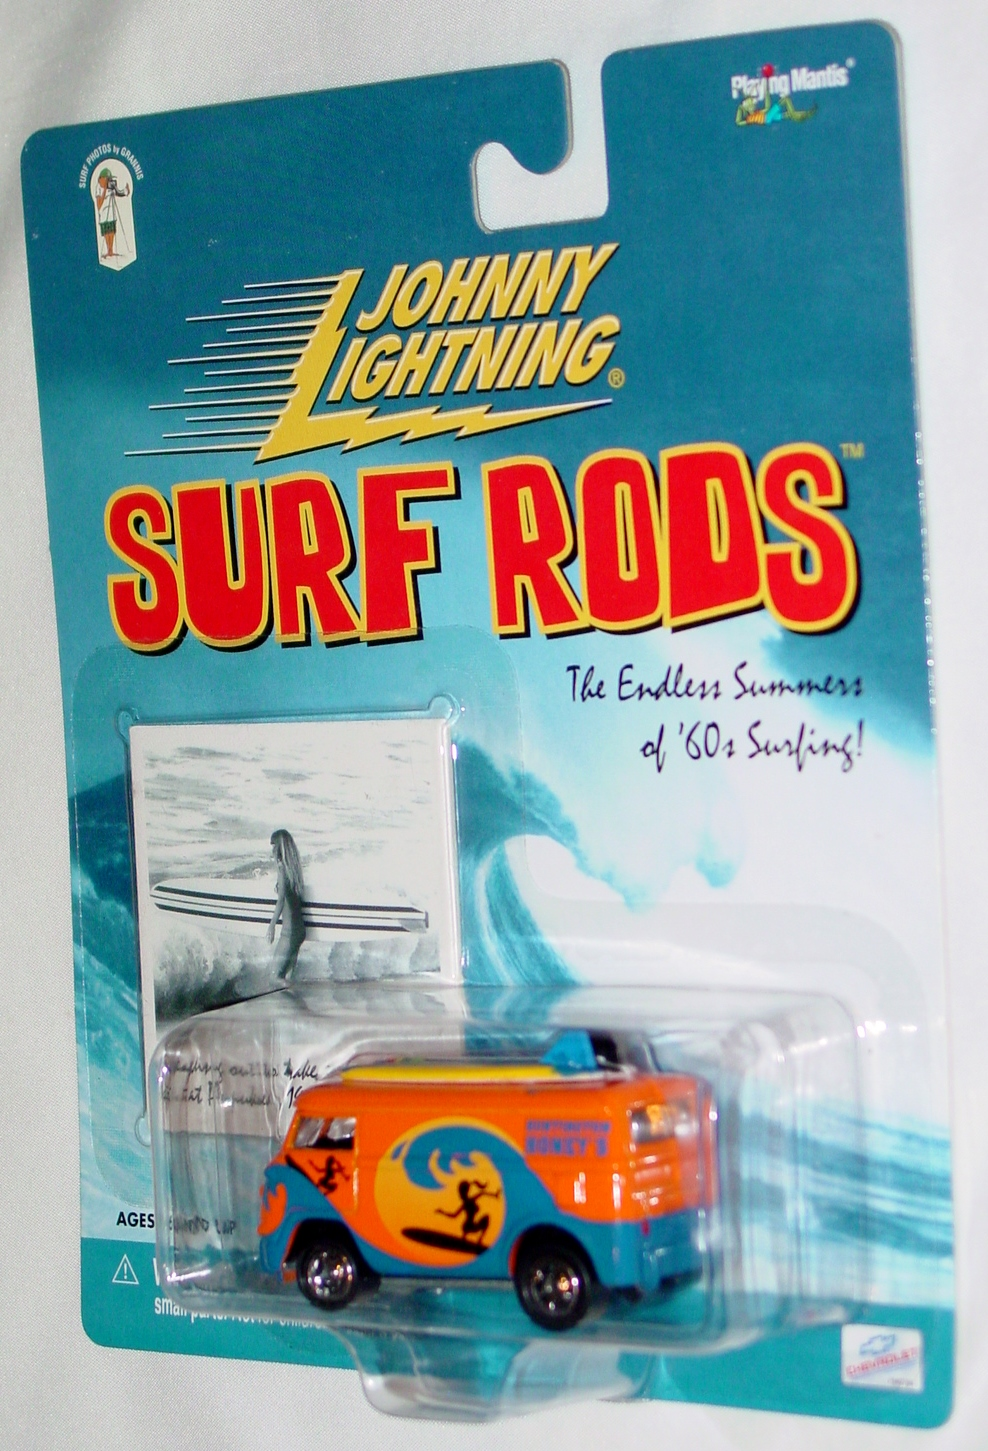 White Lightning - Surf Rod VW Bus Huntington Honies Orange